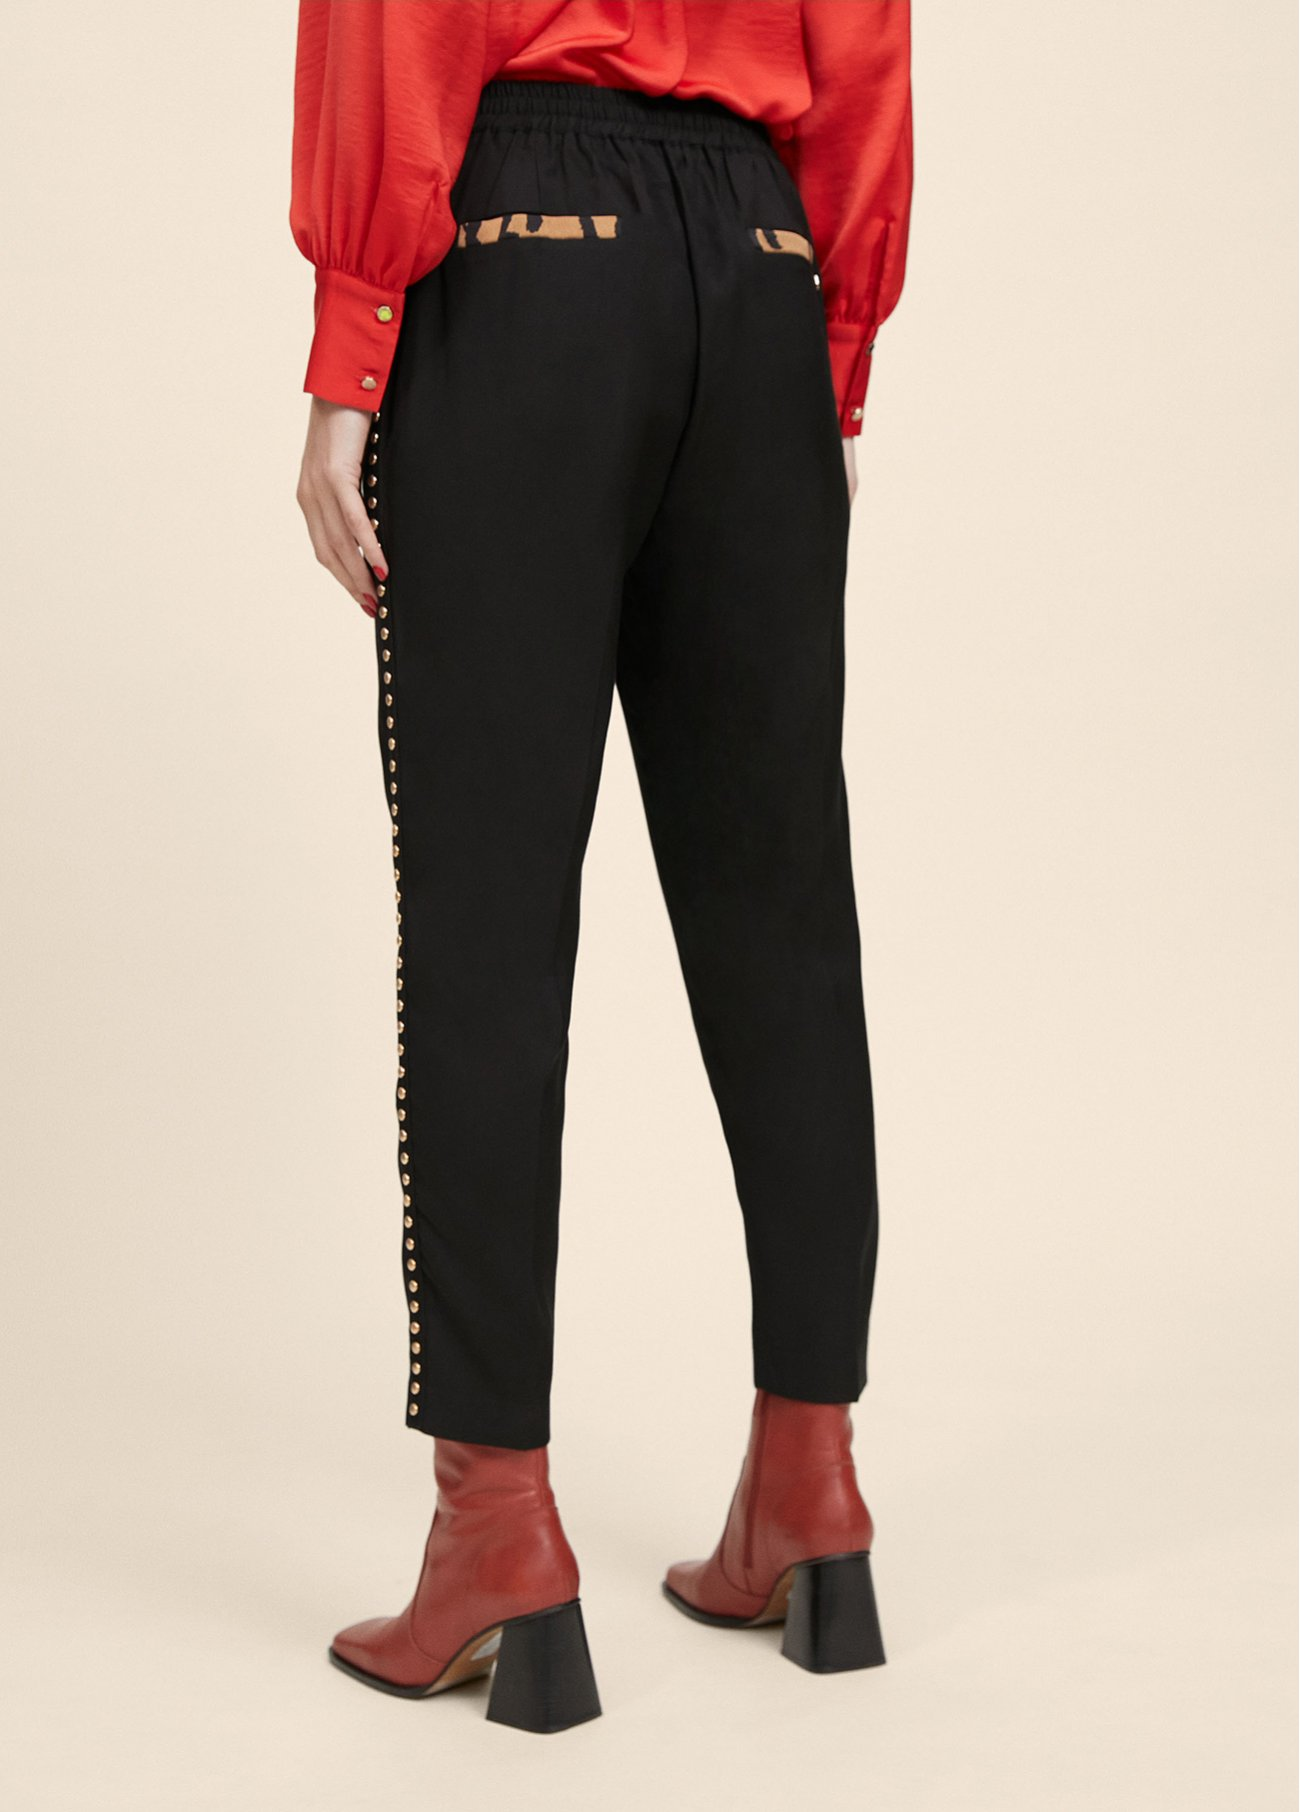 Black trousers with gold-toned studs